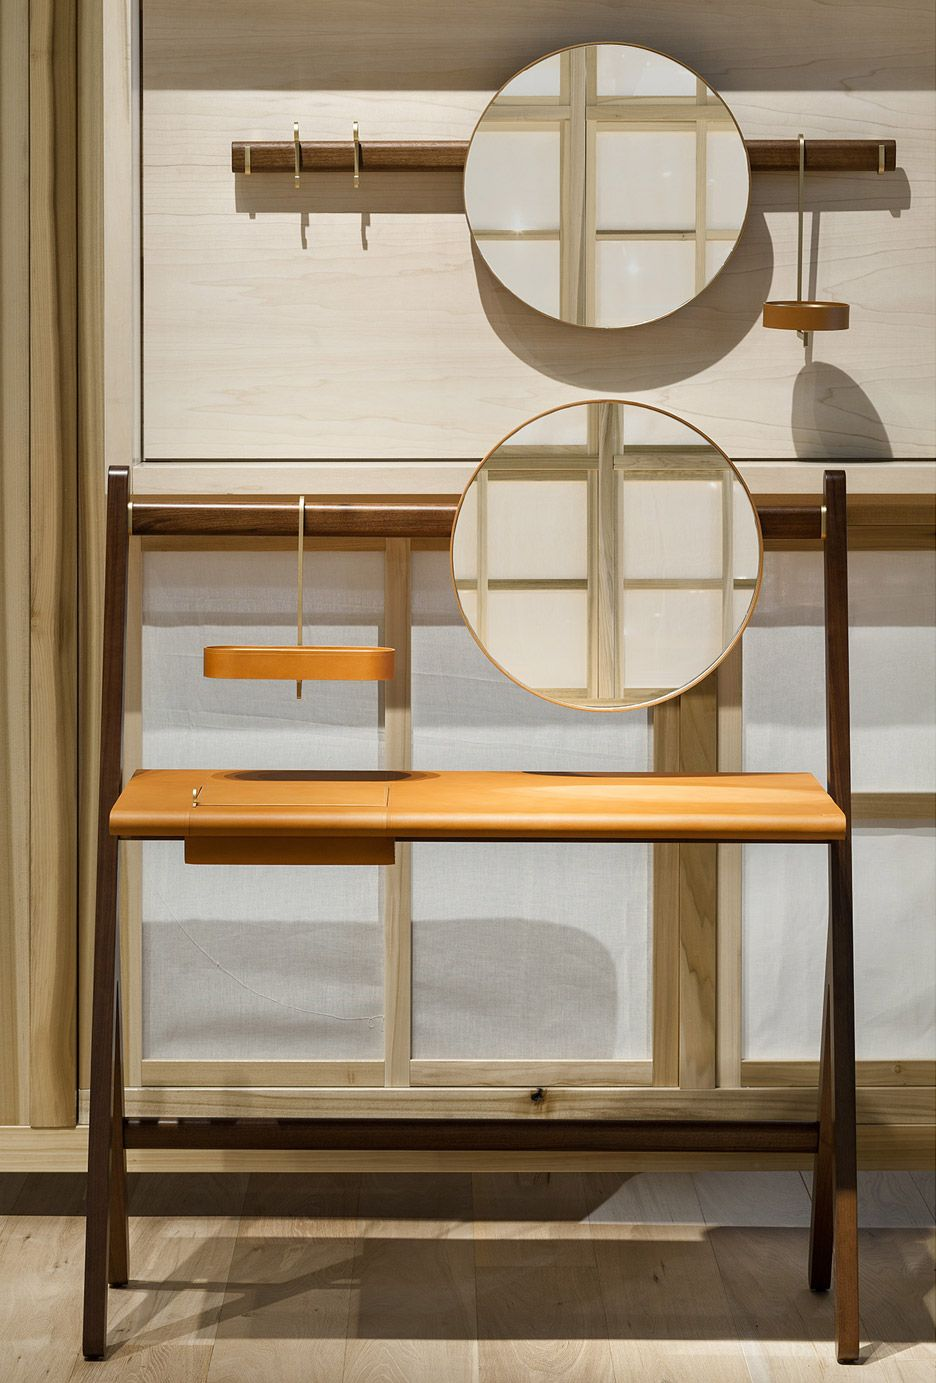 Neri Hu Designs Ren Furniture For Poltrona Frau Ranges Dressing  # Meuble Design Zein Chloe